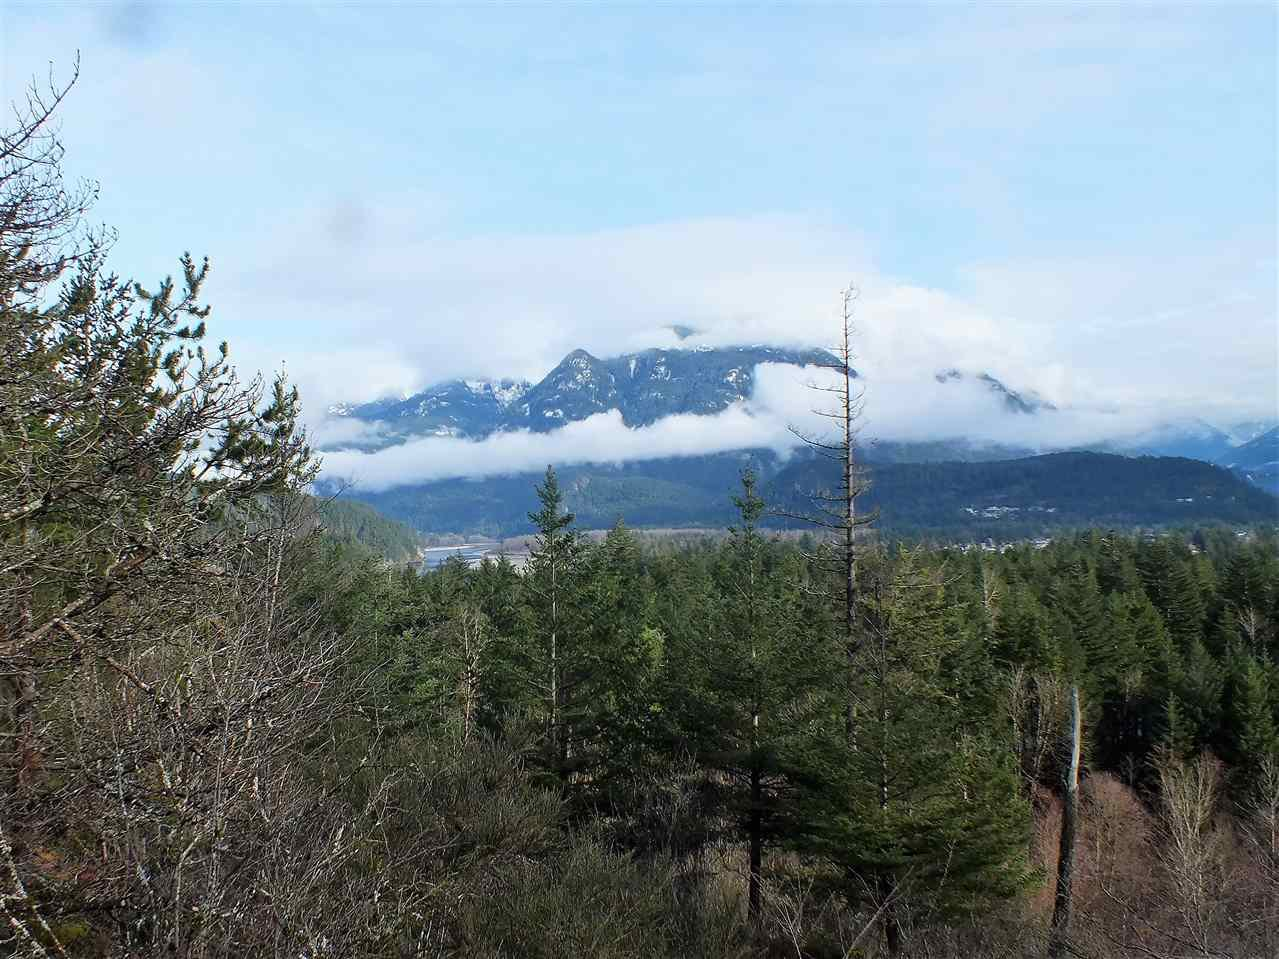 Main Photo: 21415 TRANS CANADA Highway in Hope: Hope Center Land for sale : MLS®# R2335002